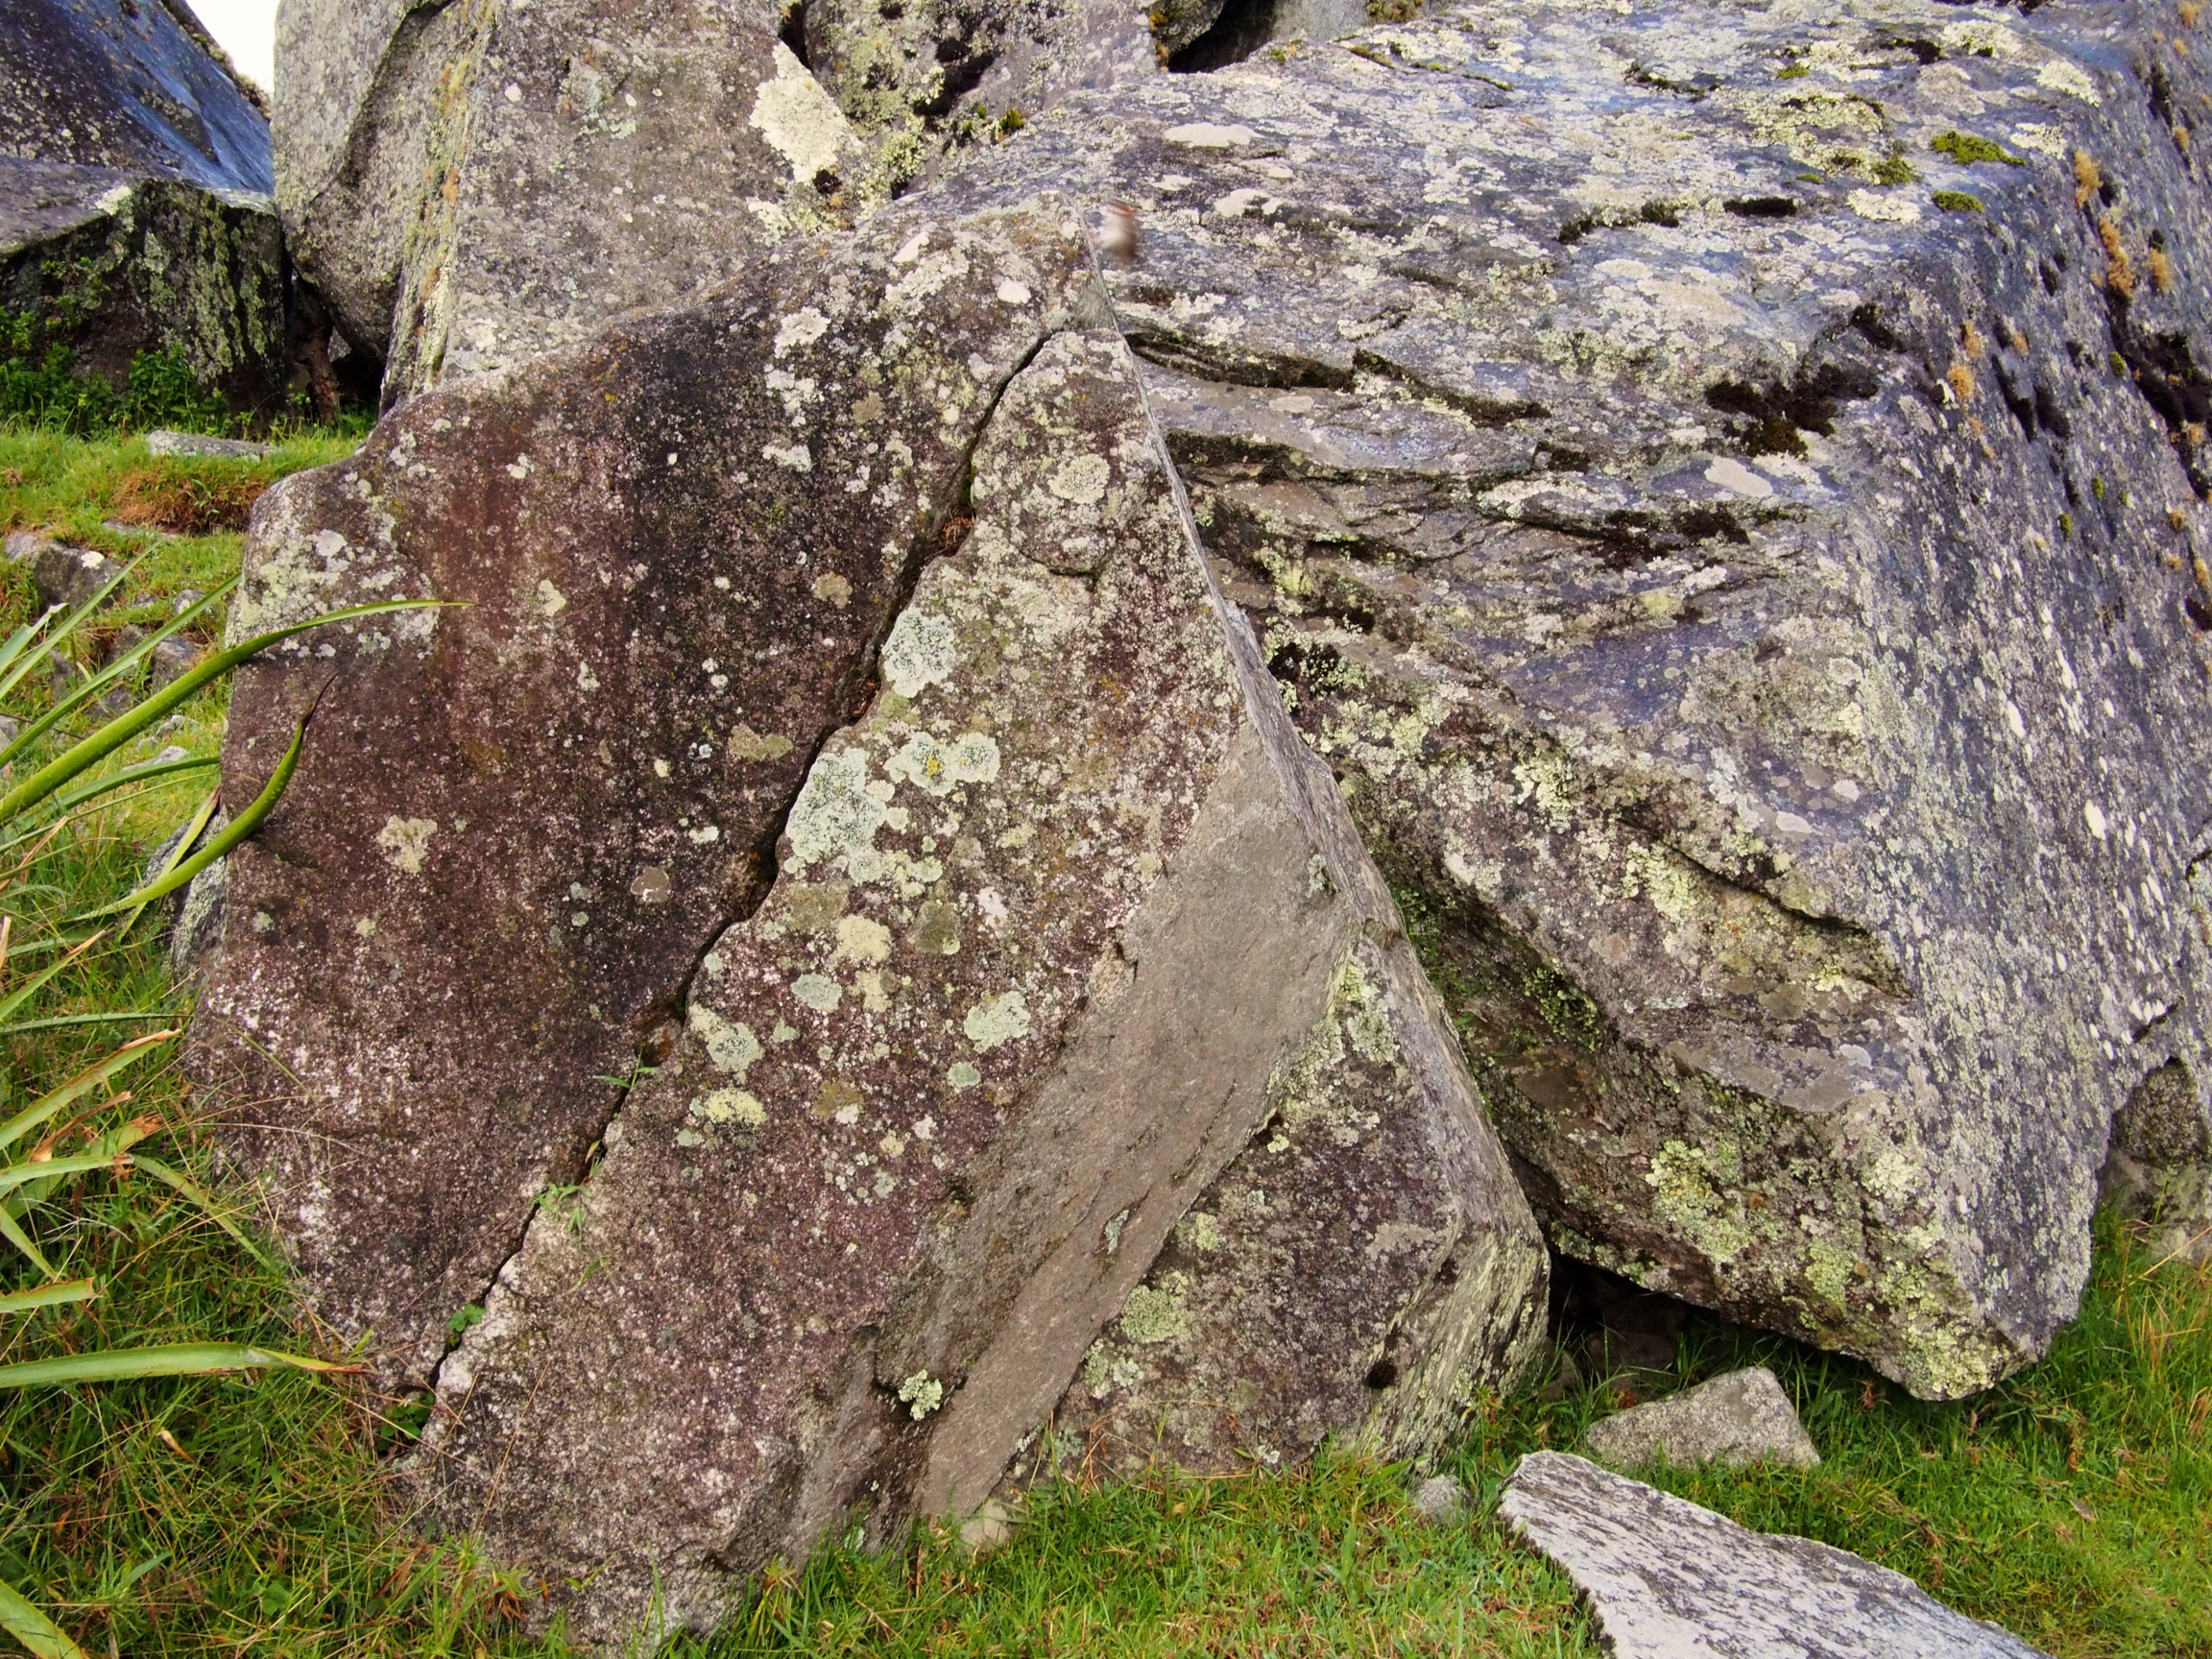 How the Incas split rocks (drilled holes, placed pieces of wood then poured water over it)